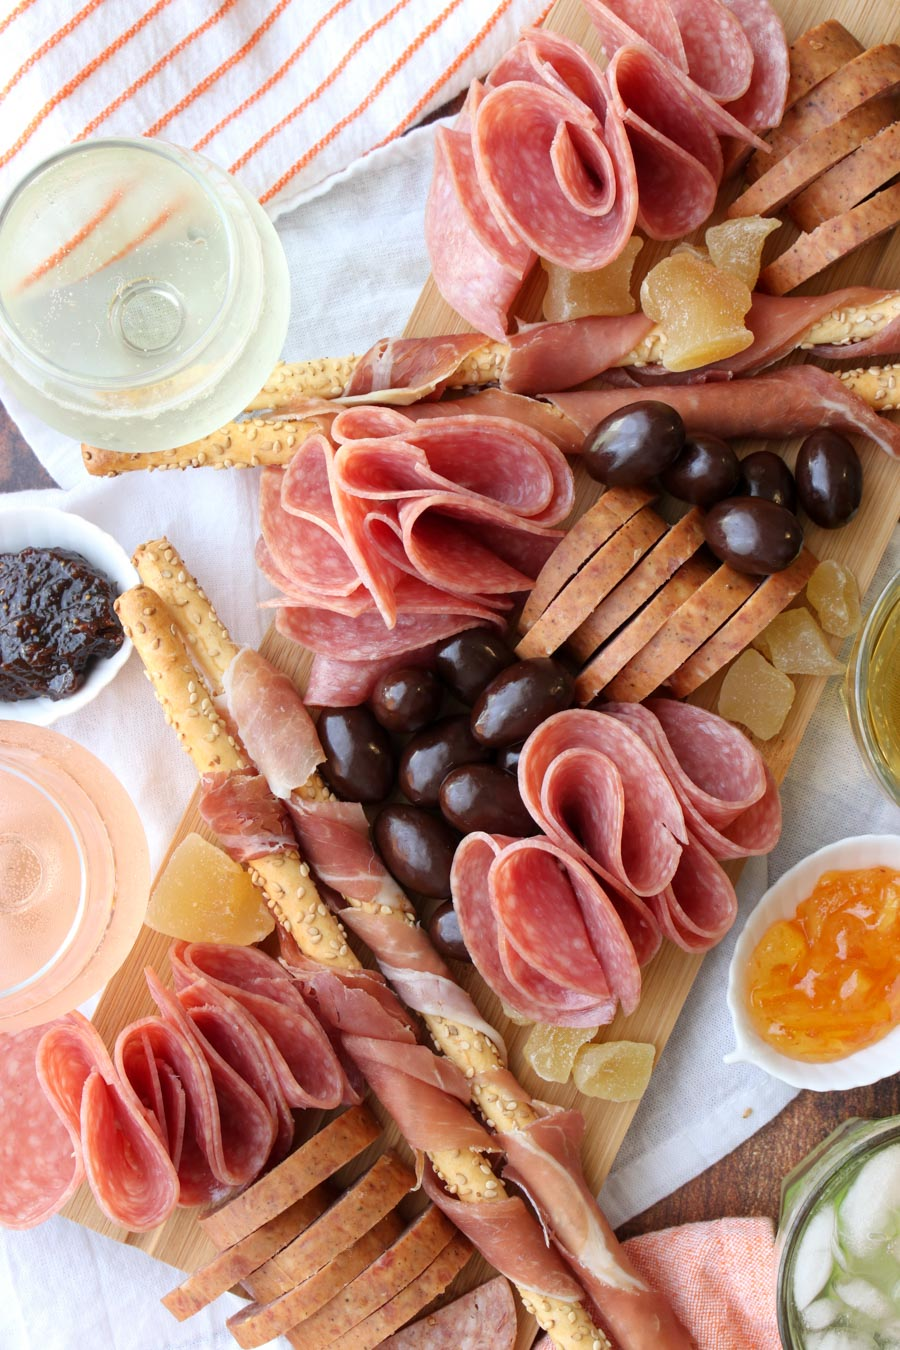 platter of meats and crackers with wine